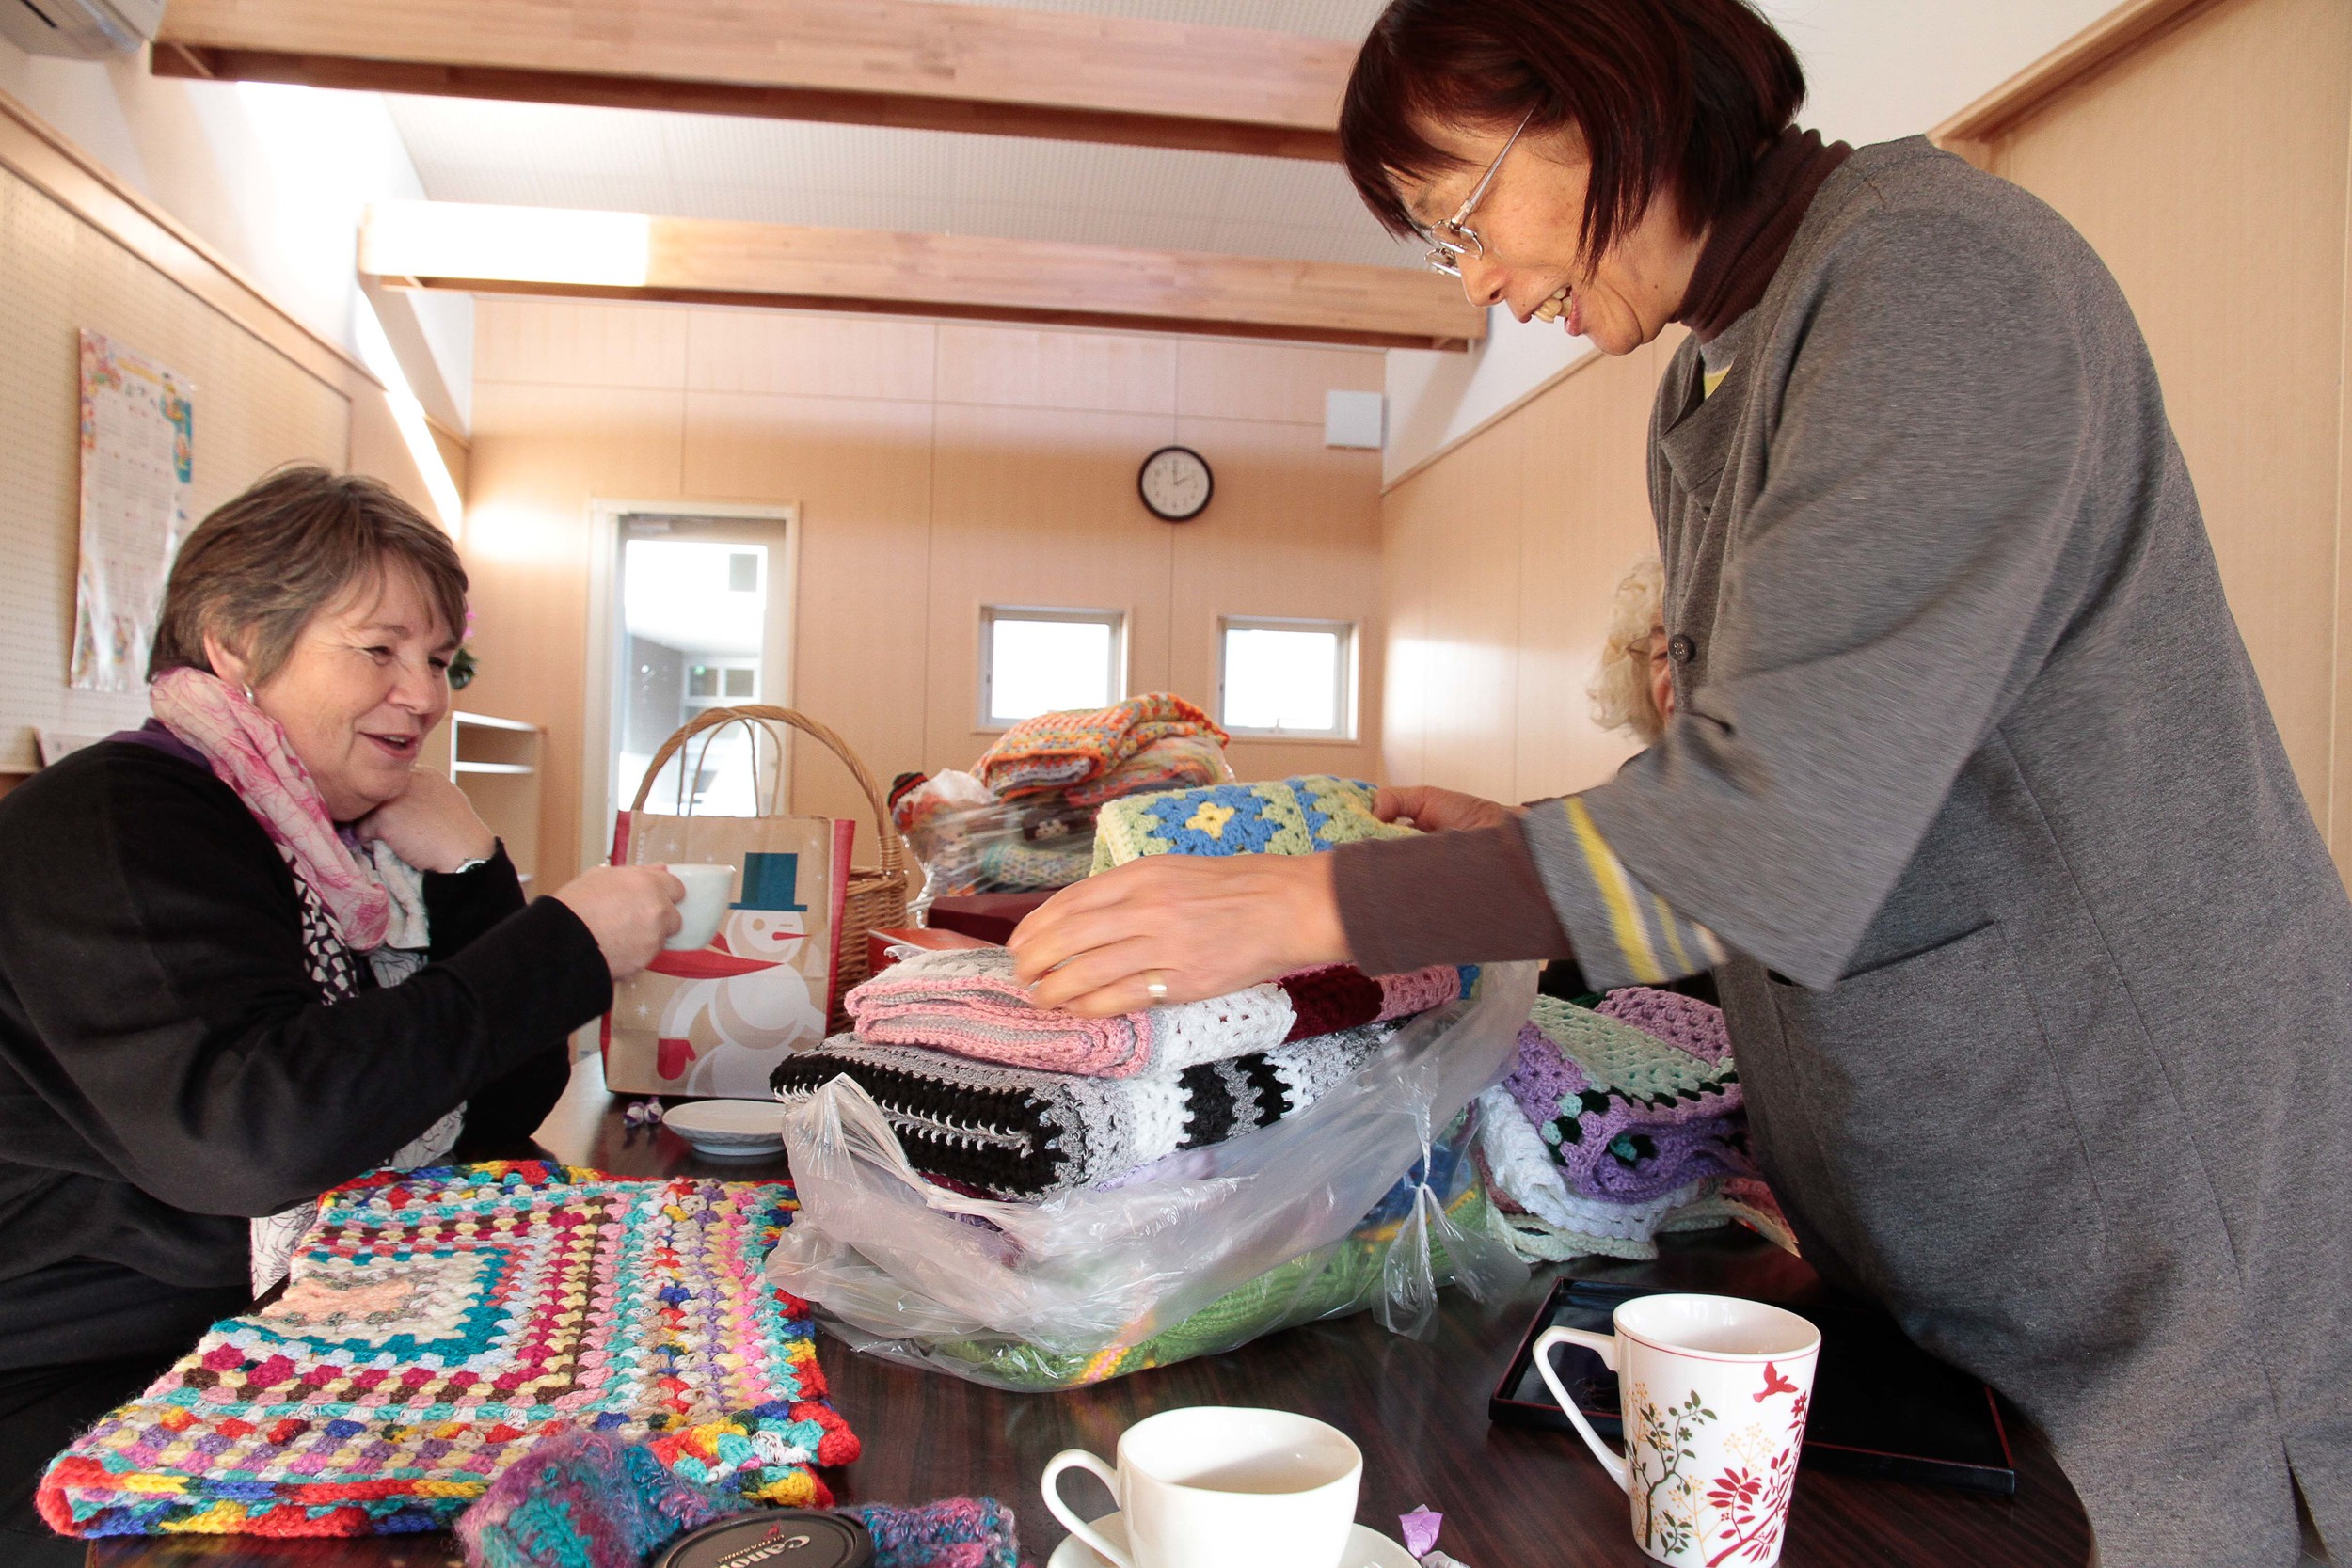 Mrs Utsumi, founder of the Mother's Home, looking at all the beautiful blankets.